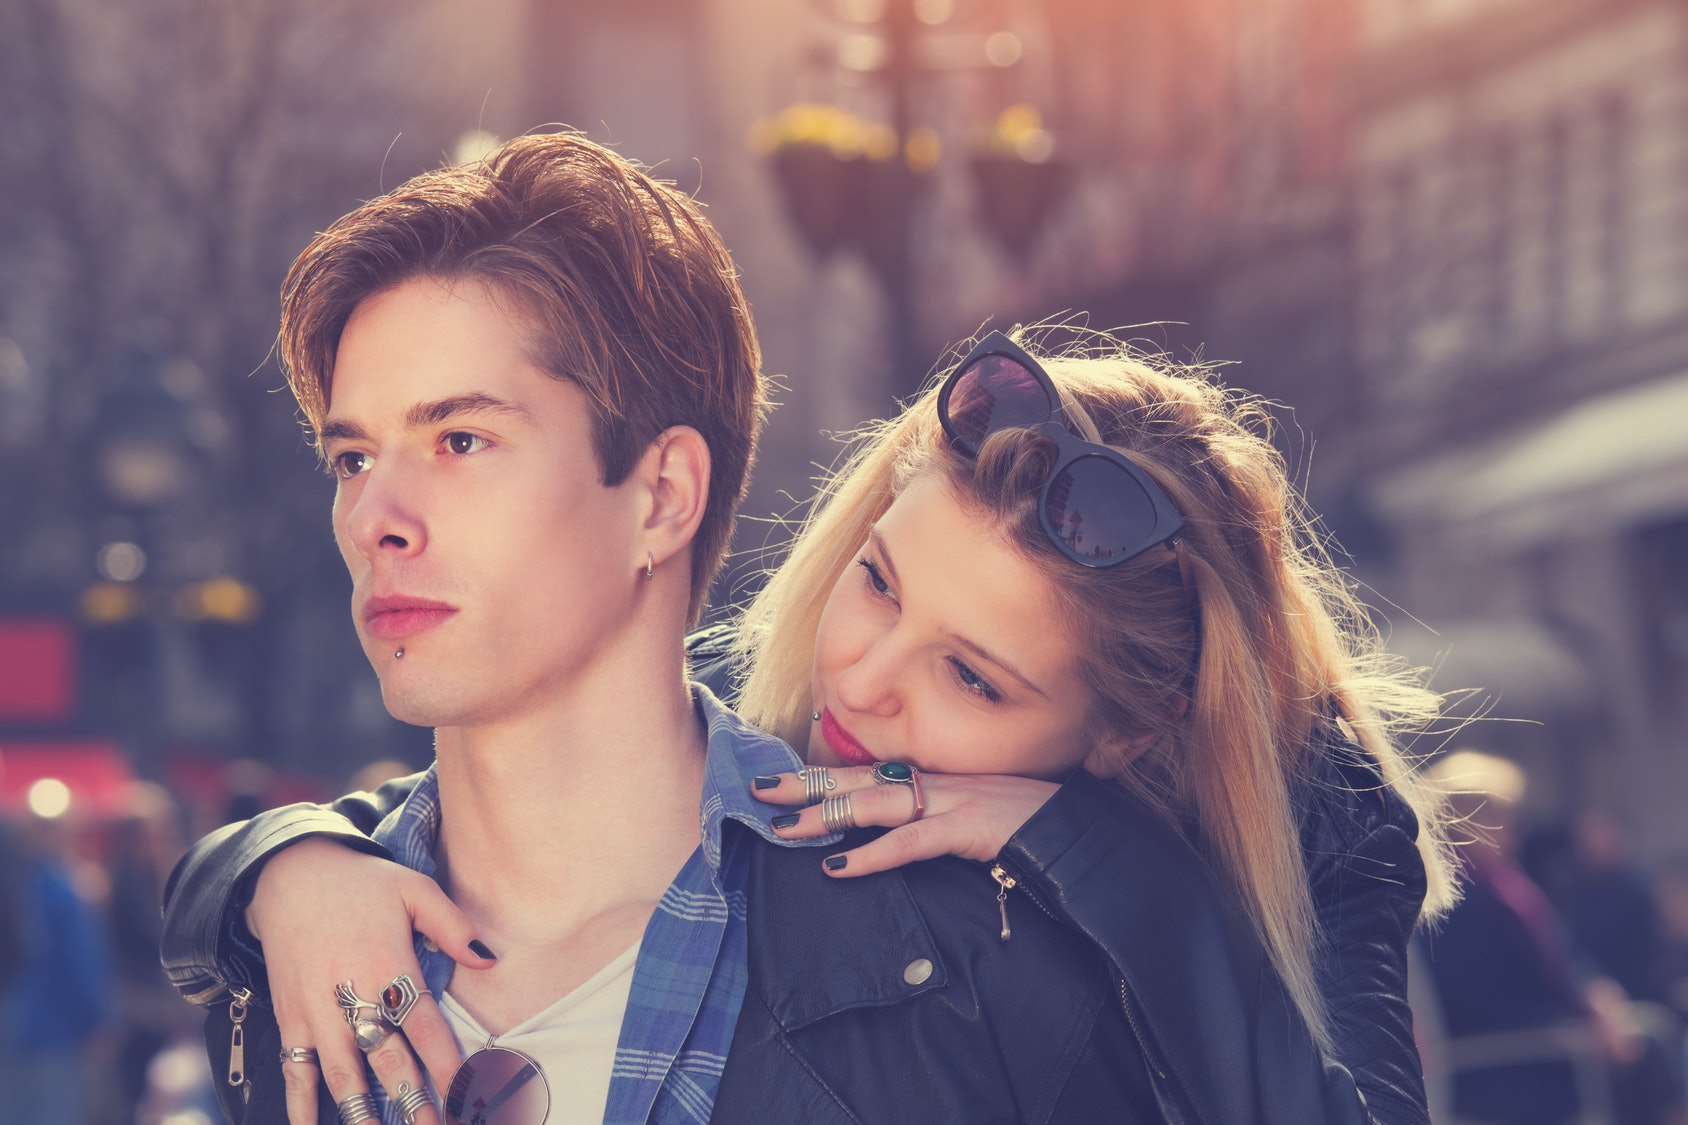 7 things consider getting back together your ex